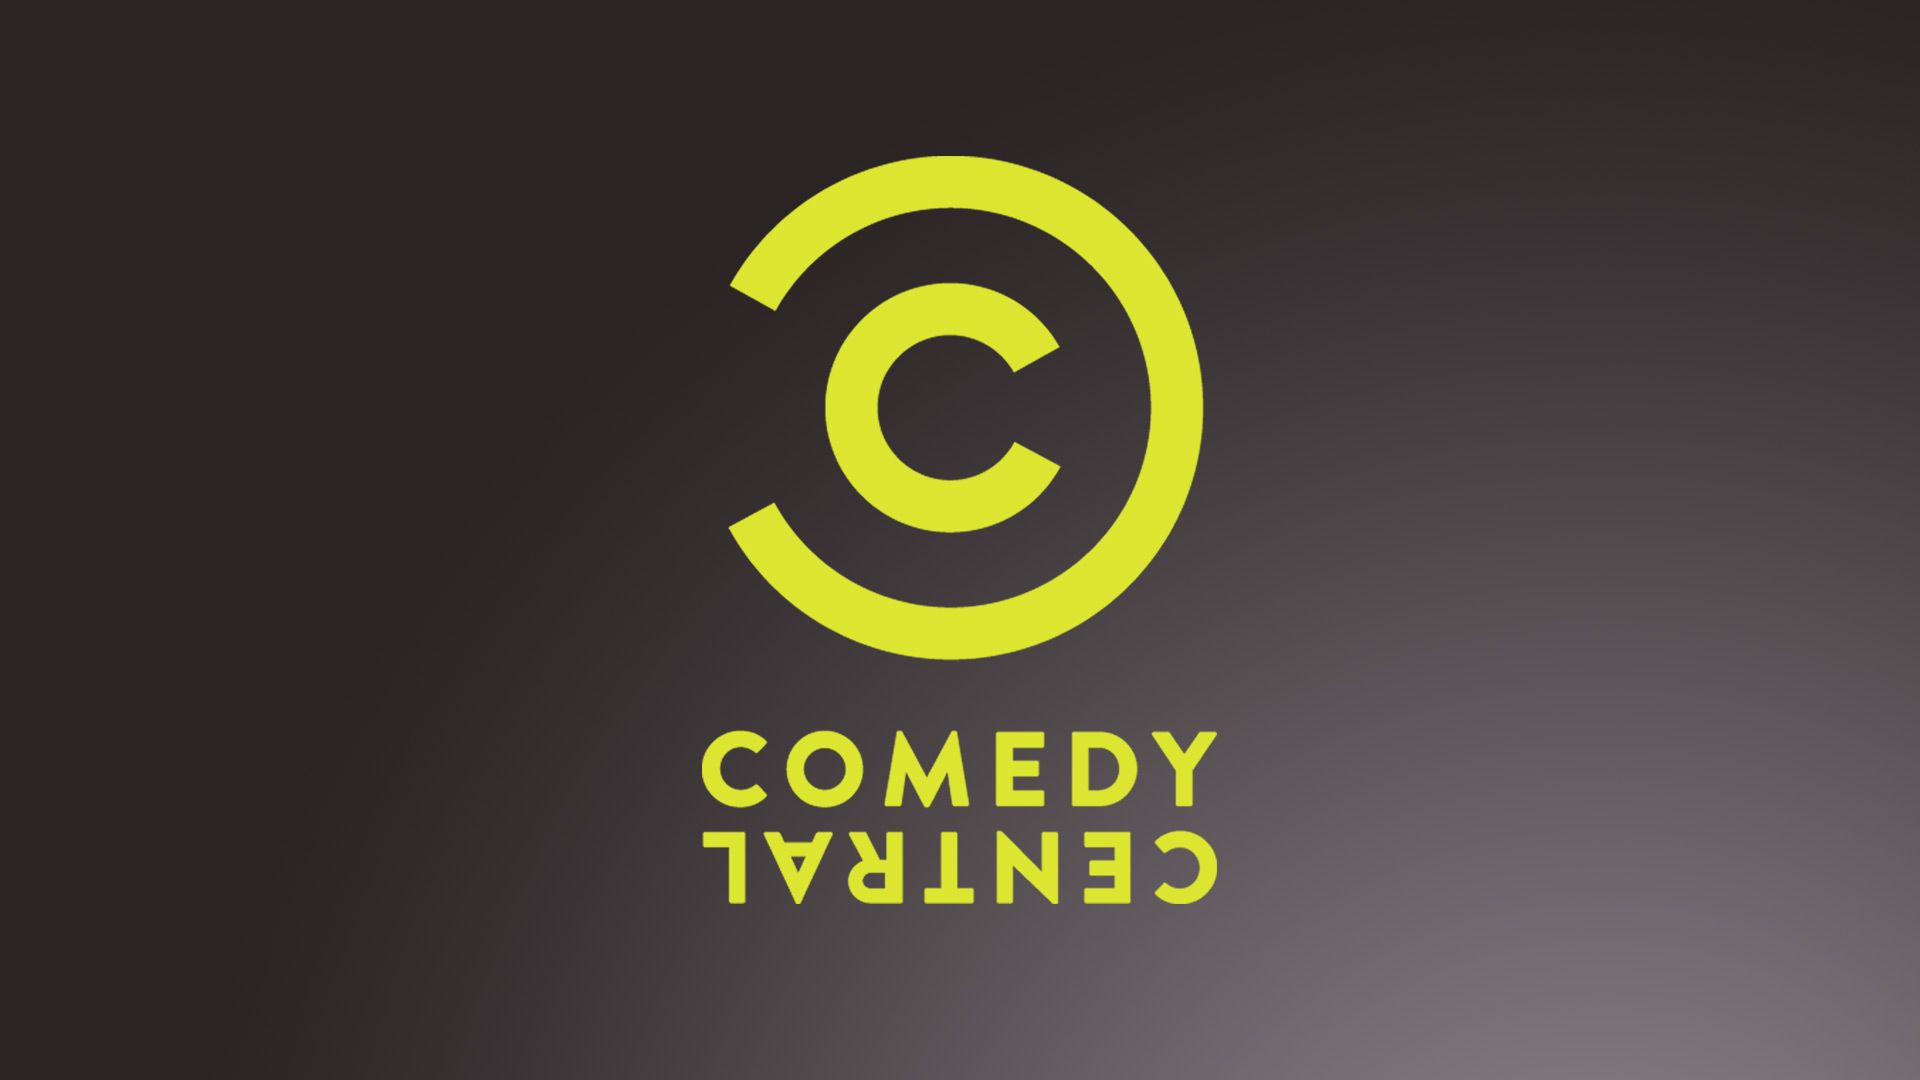 Comedy Central Official Site - TV Show Full Episodes & Funny